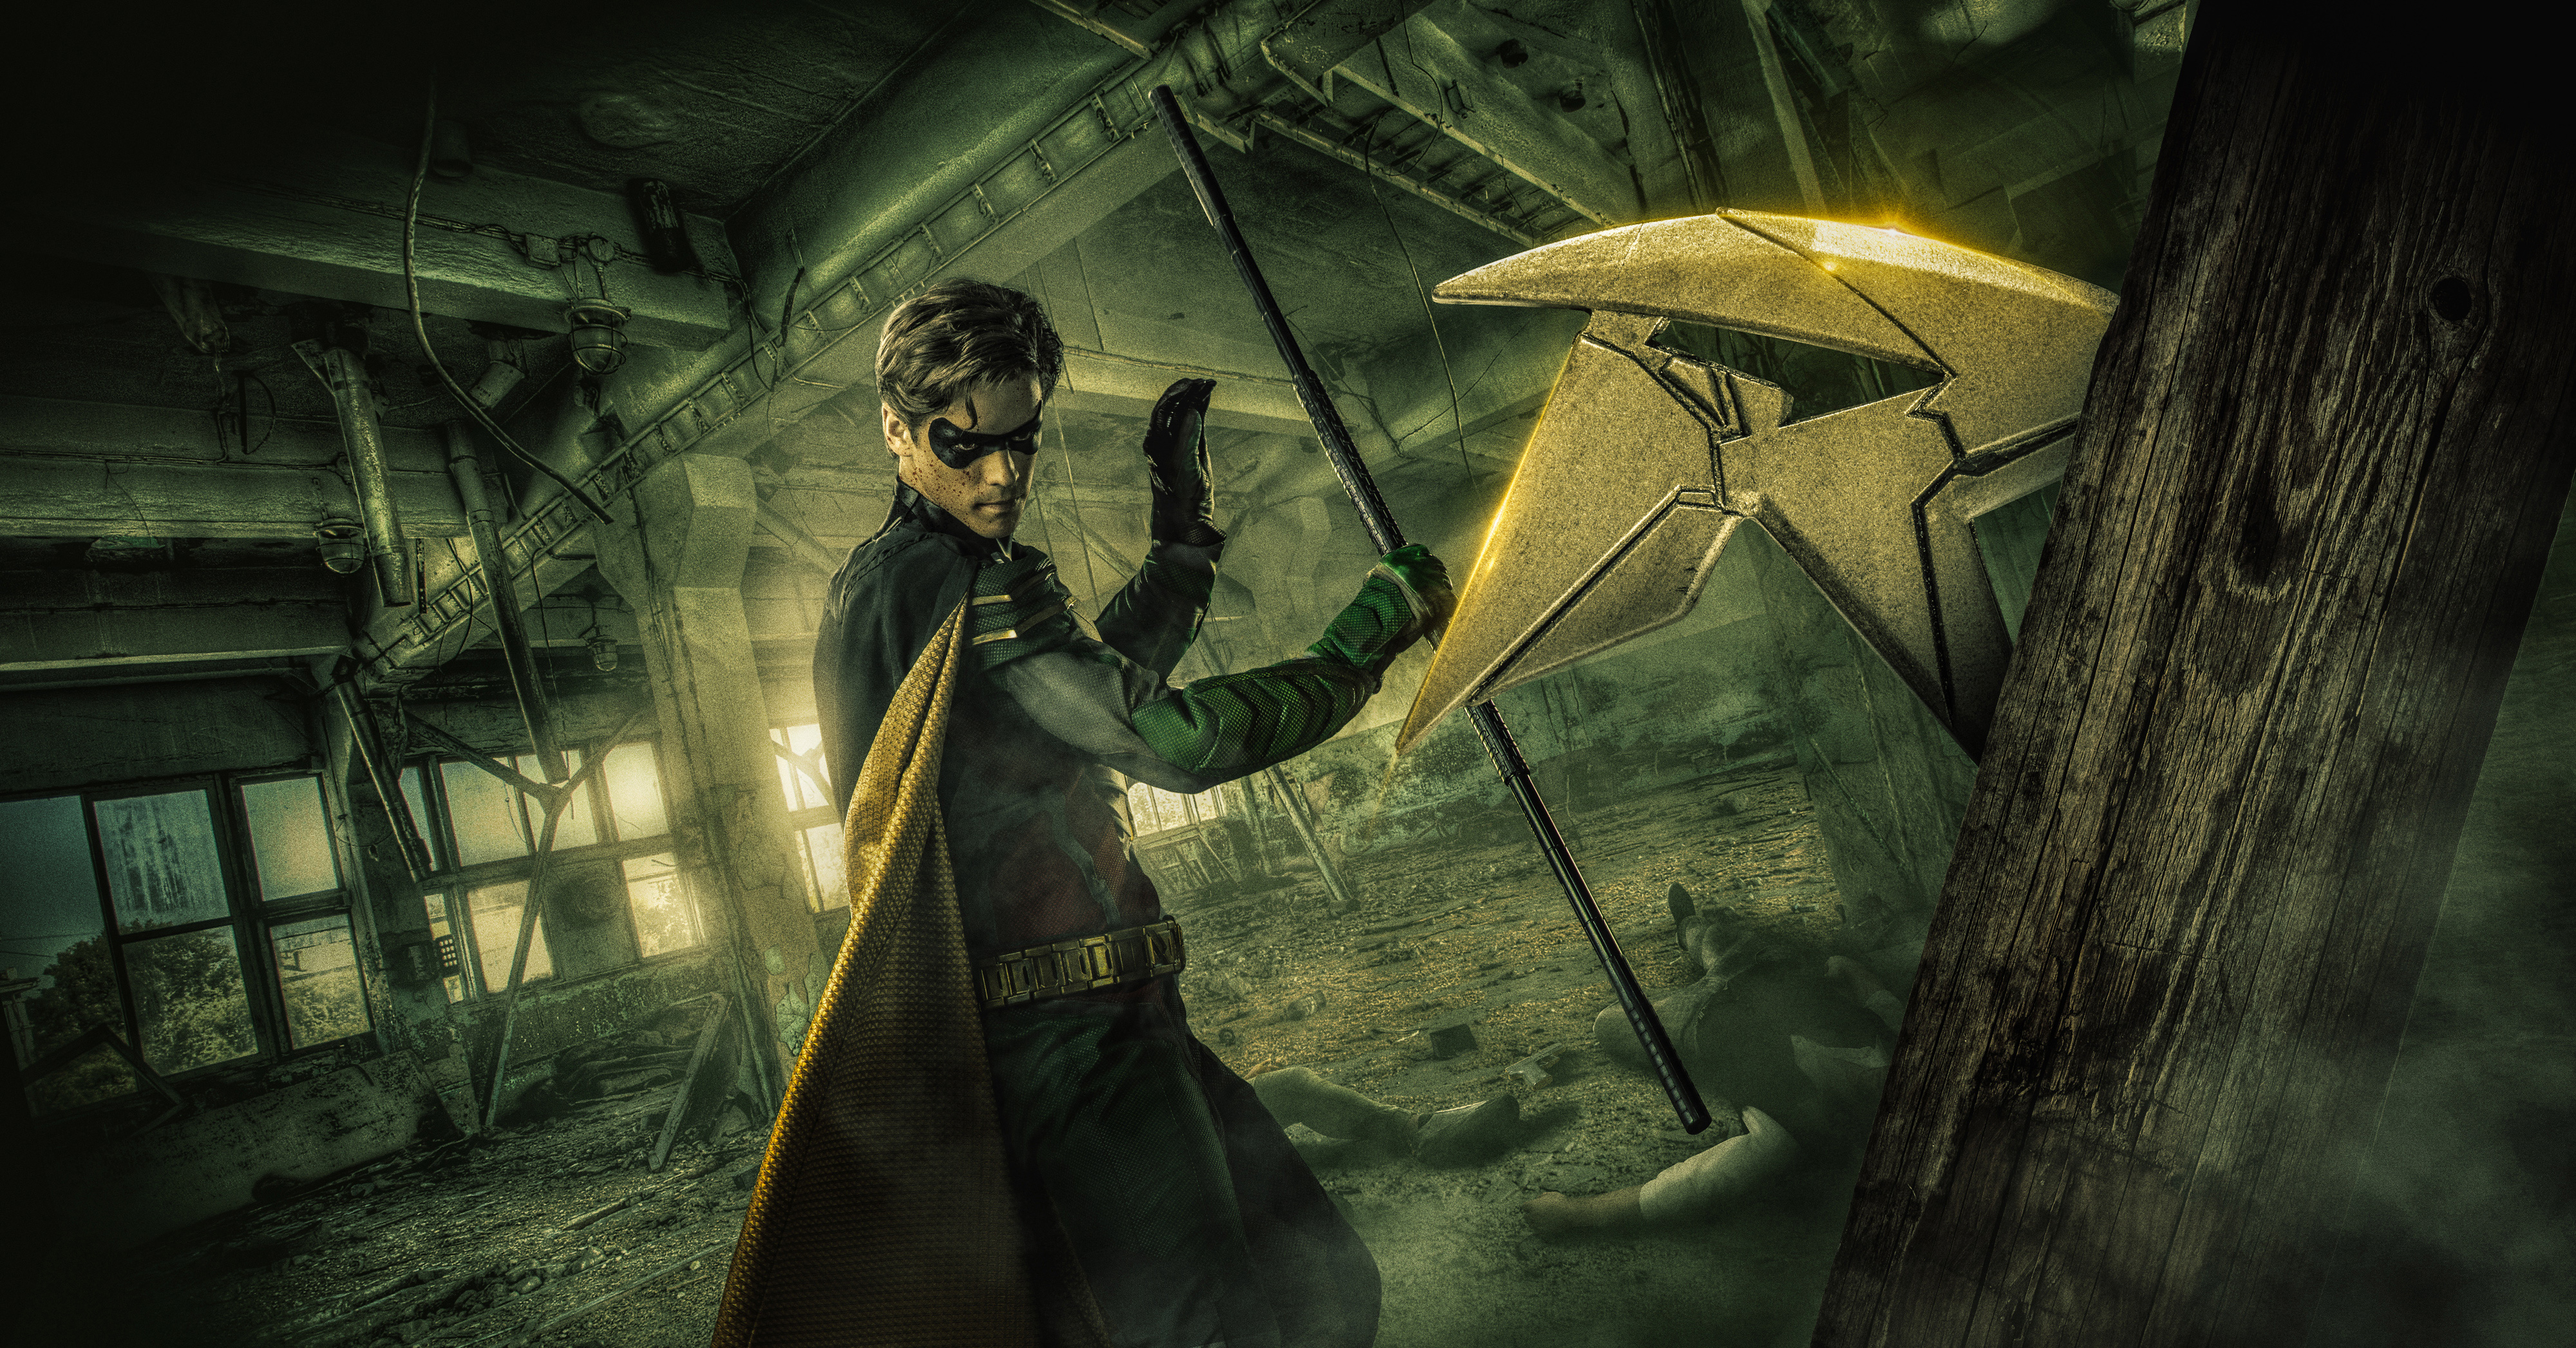 Robin in titans 4k 2018 hd tv shows 4k wallpapers - Tv series wallpaper 4k ...